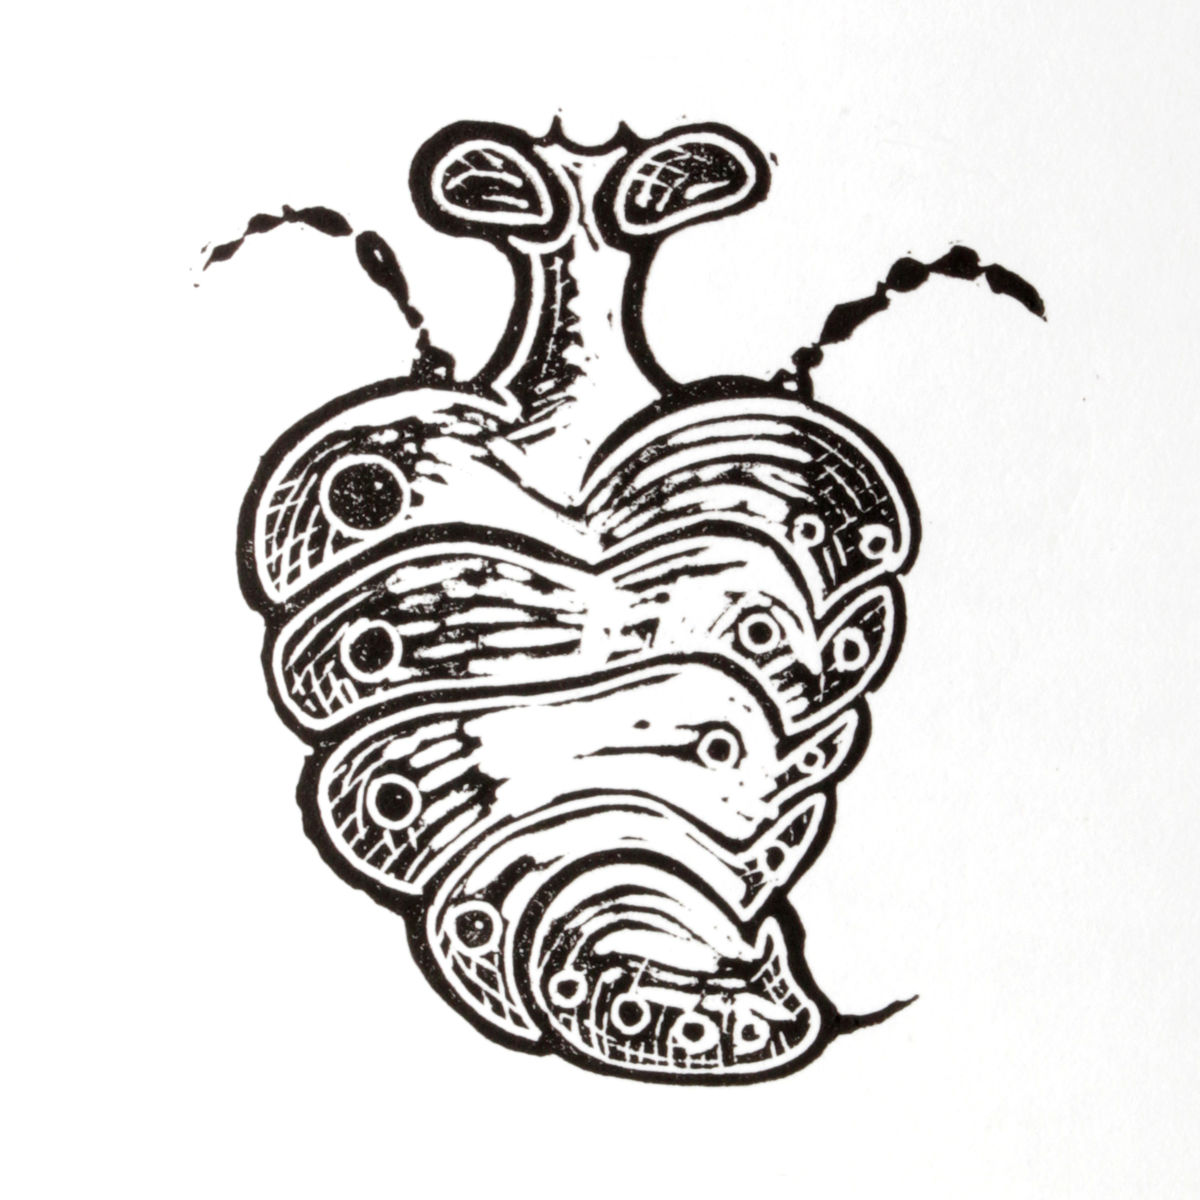 WaspHeart Black Original Print Linocut - product images  of